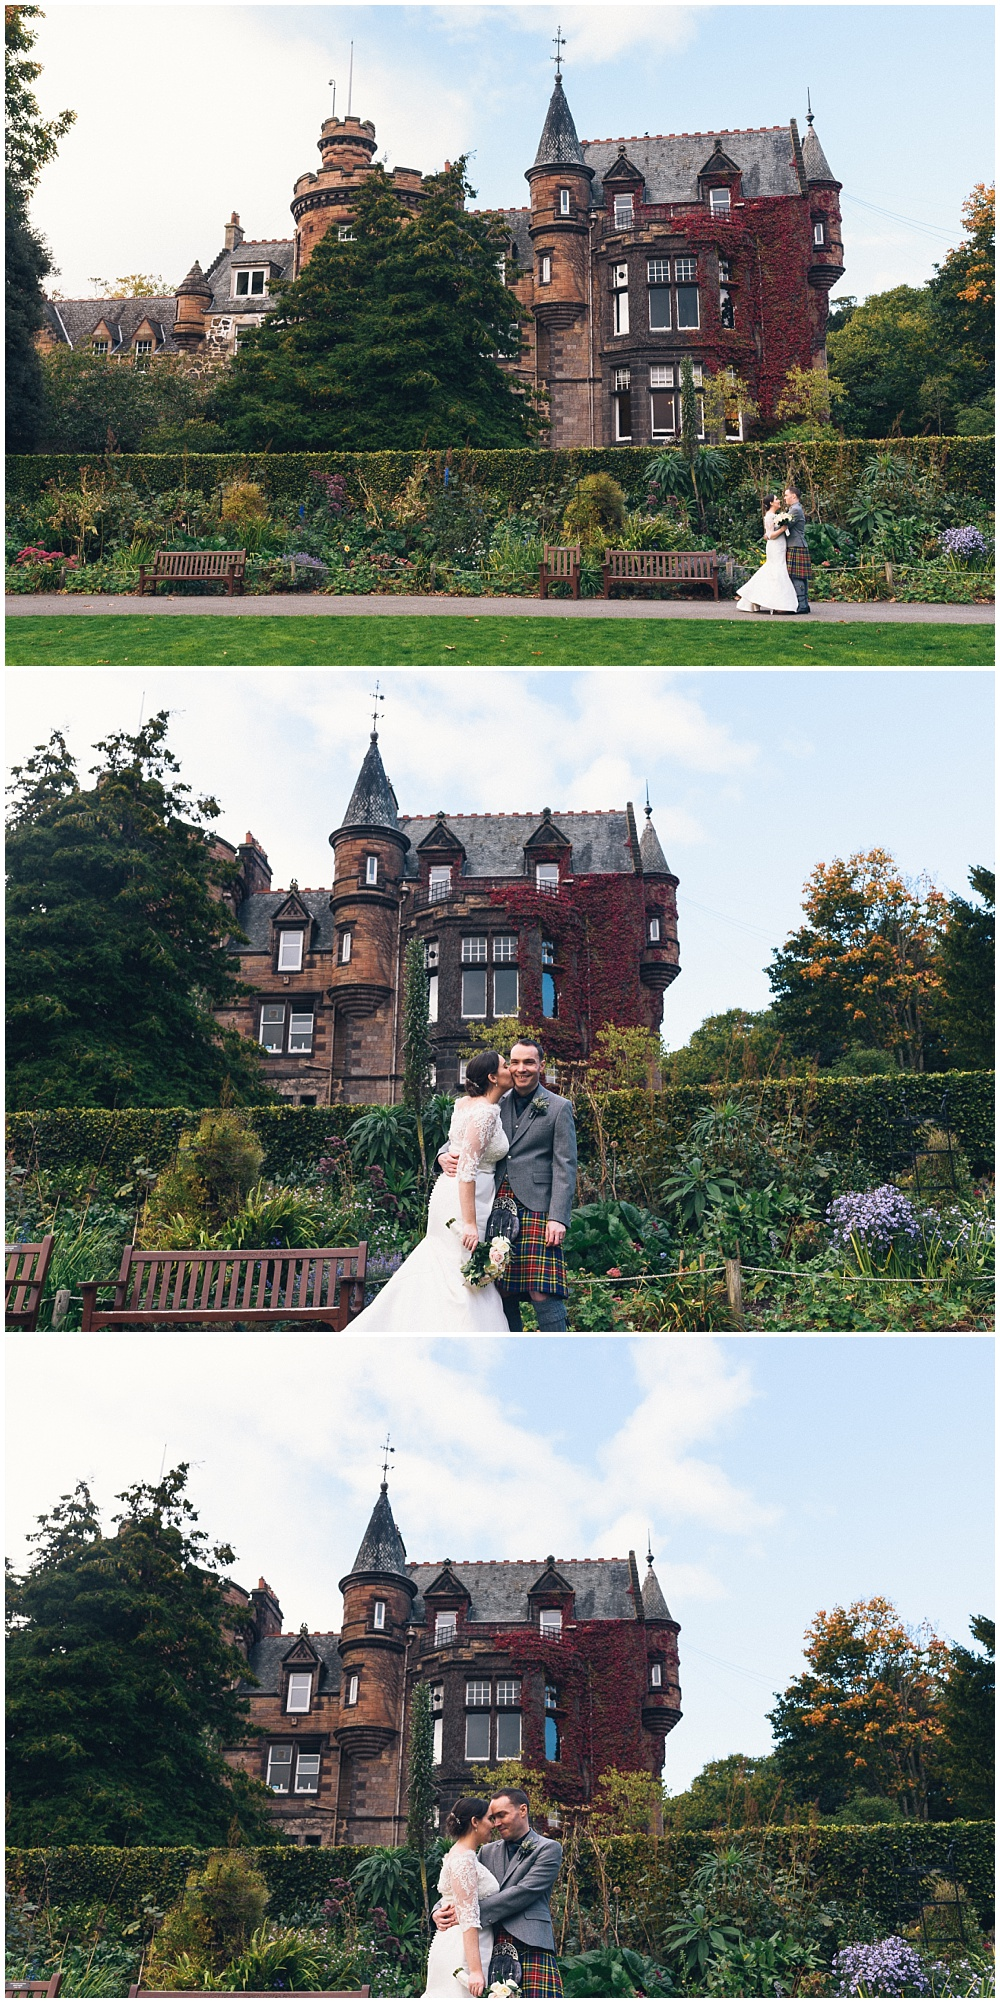 Edinburgh Zoo,Peguin Parade,wedding, Edinburgh Zoo Wedding, Mansion House, Scotland, tartam, kilts, Mark McCue, wedding photography, wedding photographer